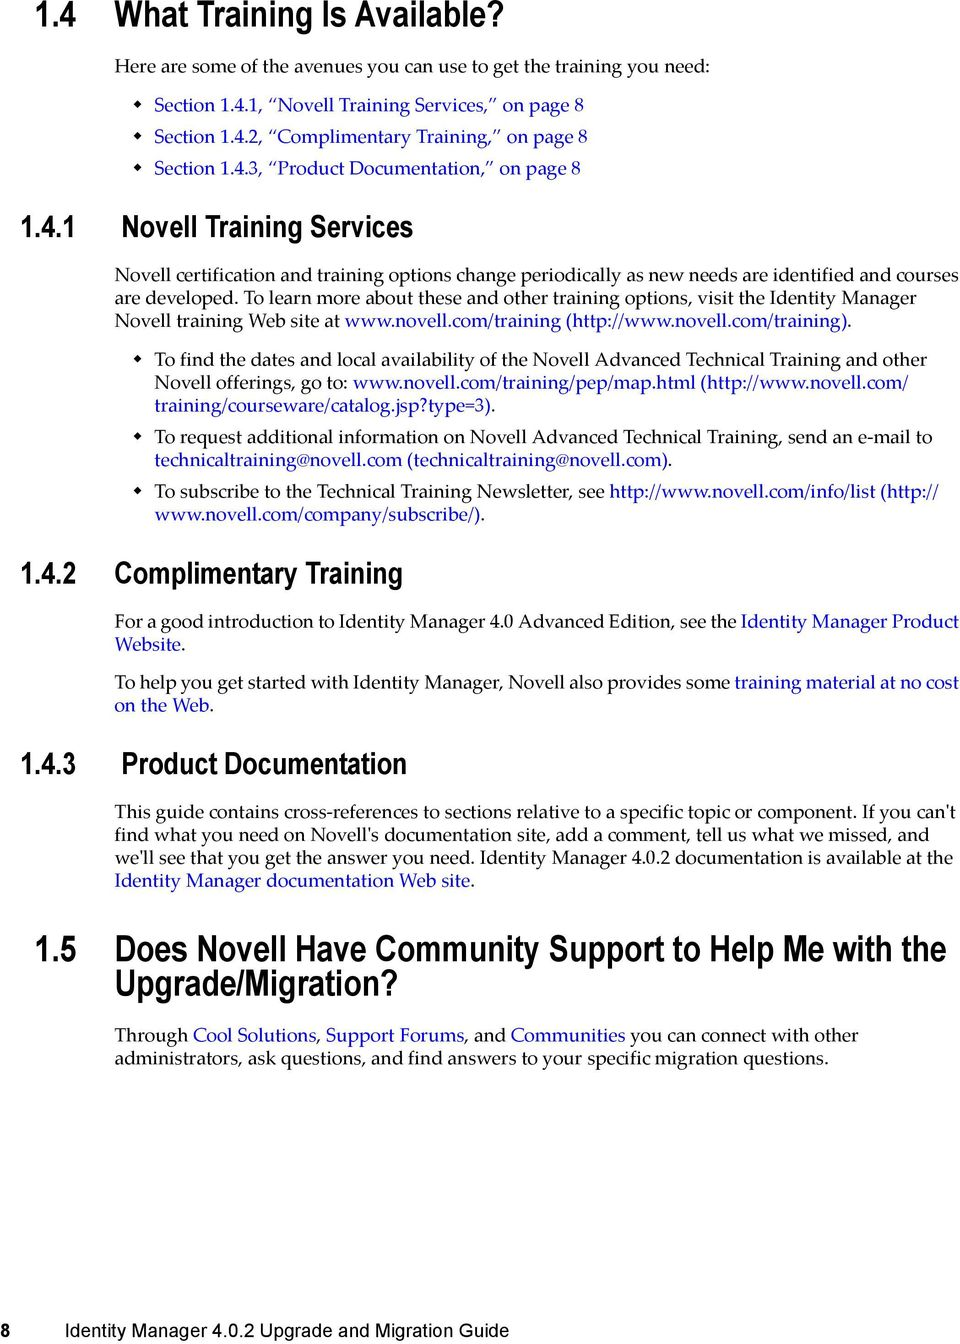 To learn more about these and other training options, visit the Identity Manager Novell training Web site at www.novell.com/training (http://www.novell.com/training).